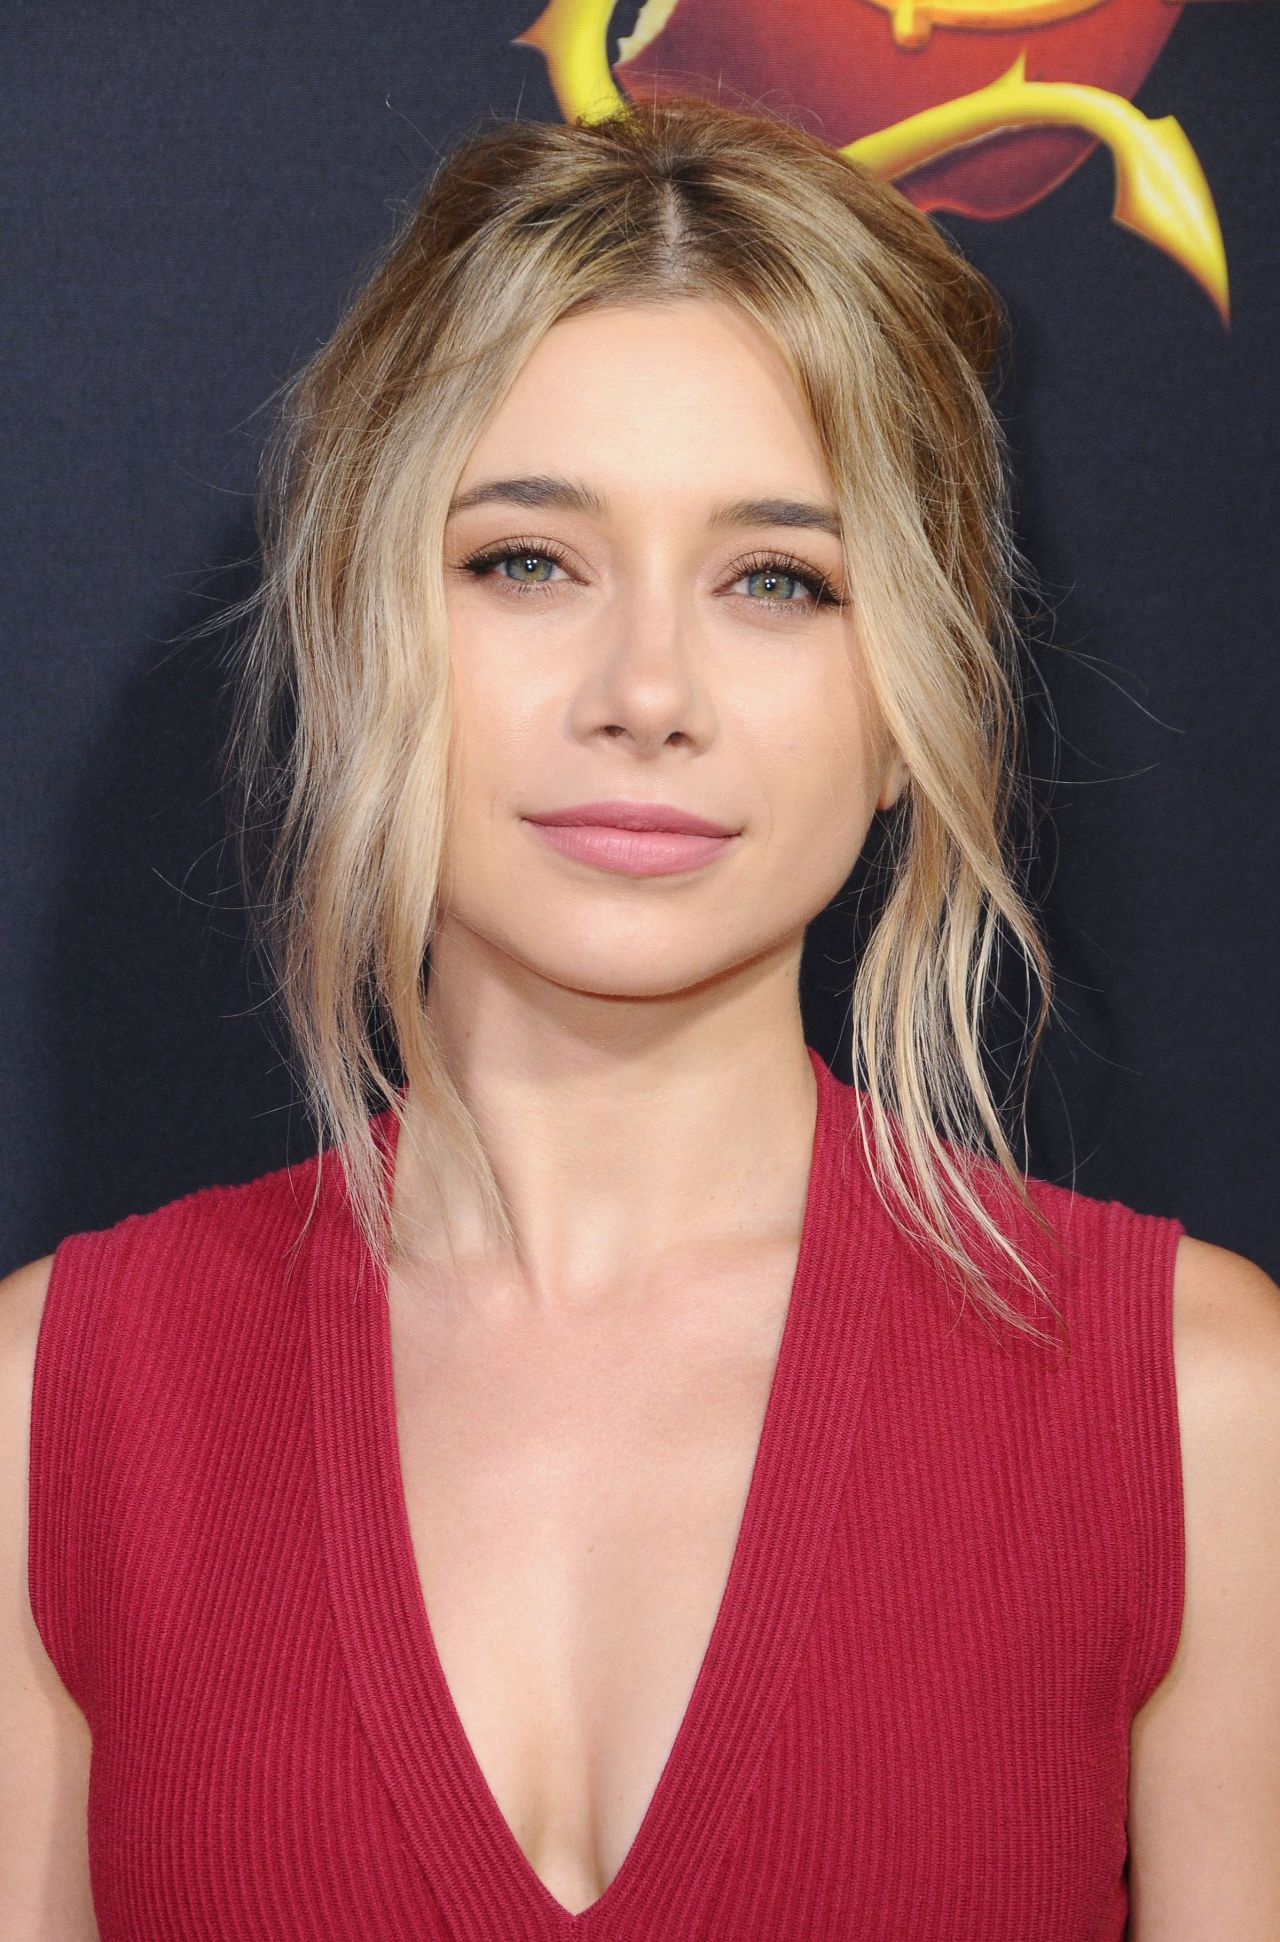 Celebrity Olesya Rulin naked (21 photos), Tits, Paparazzi, Selfie, cleavage 2006